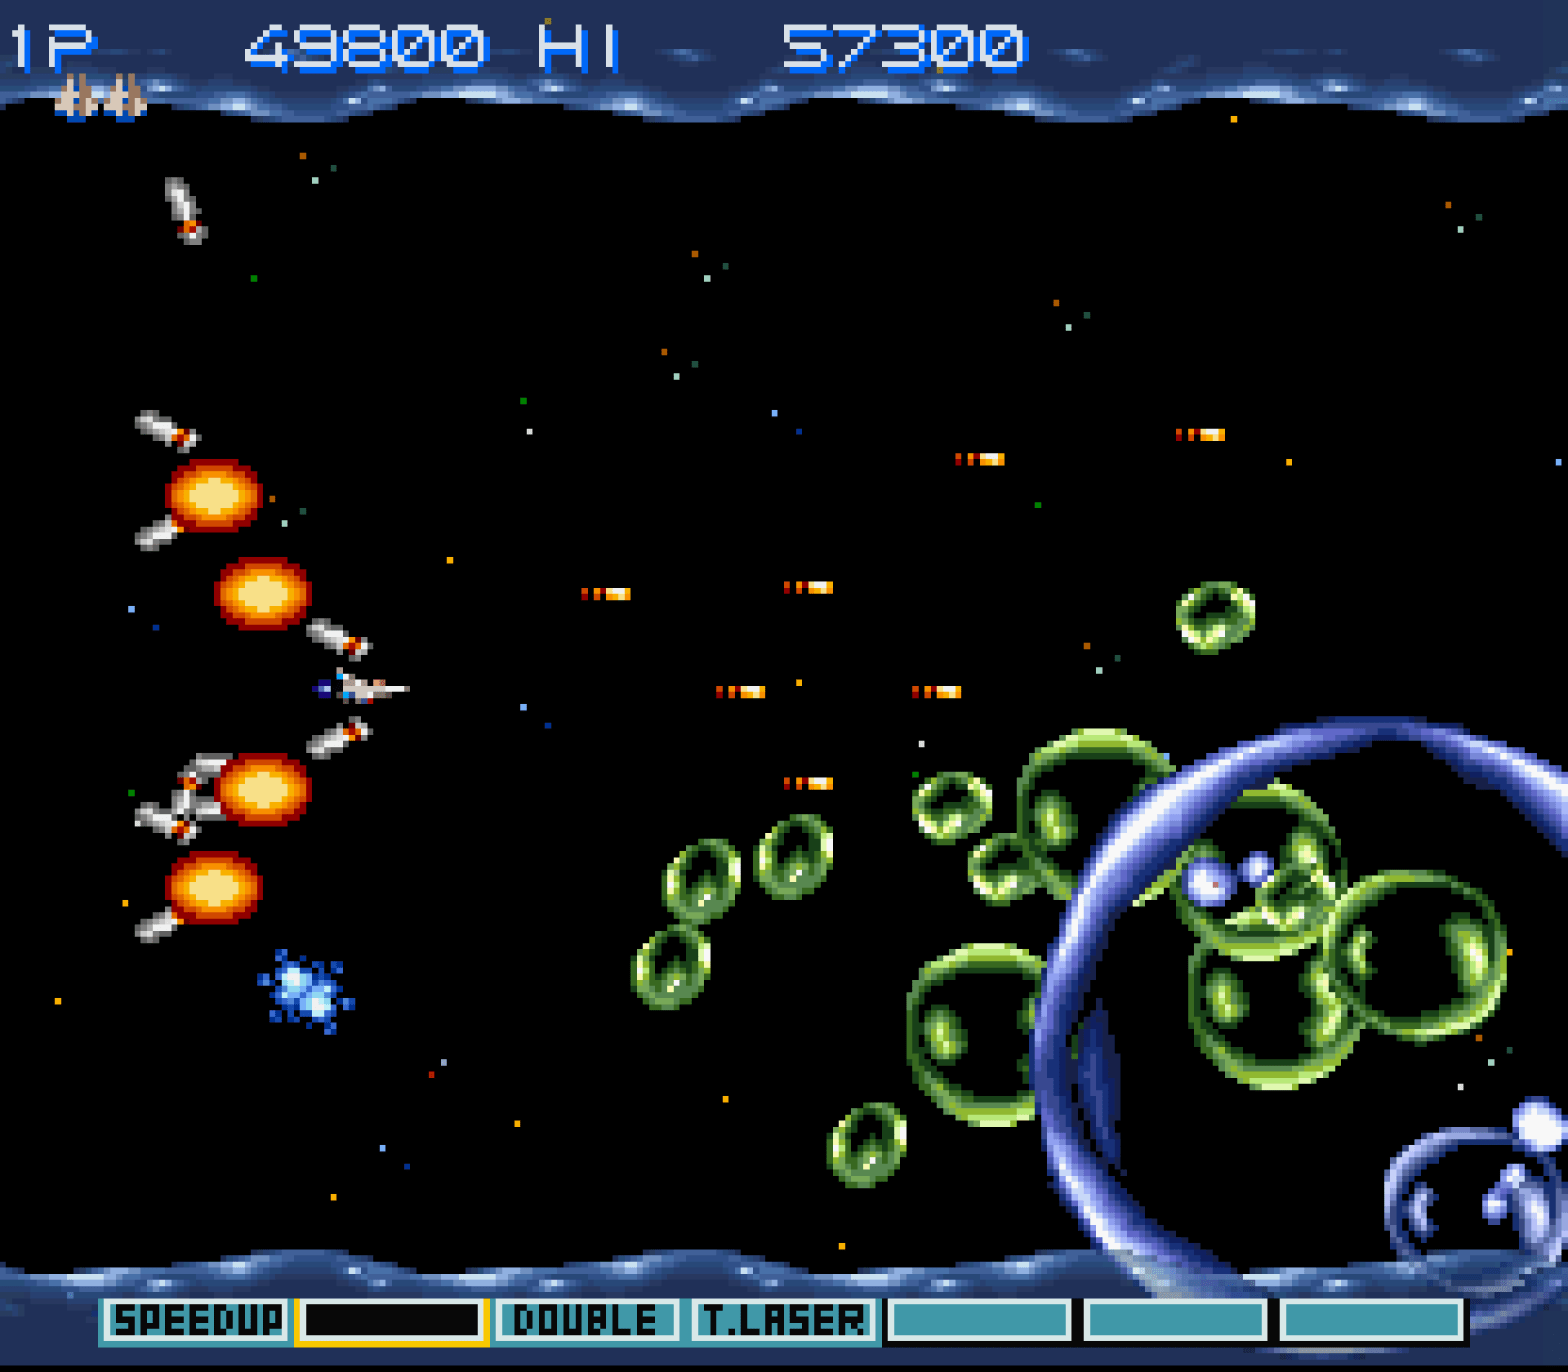 Gradius III with no slowdown